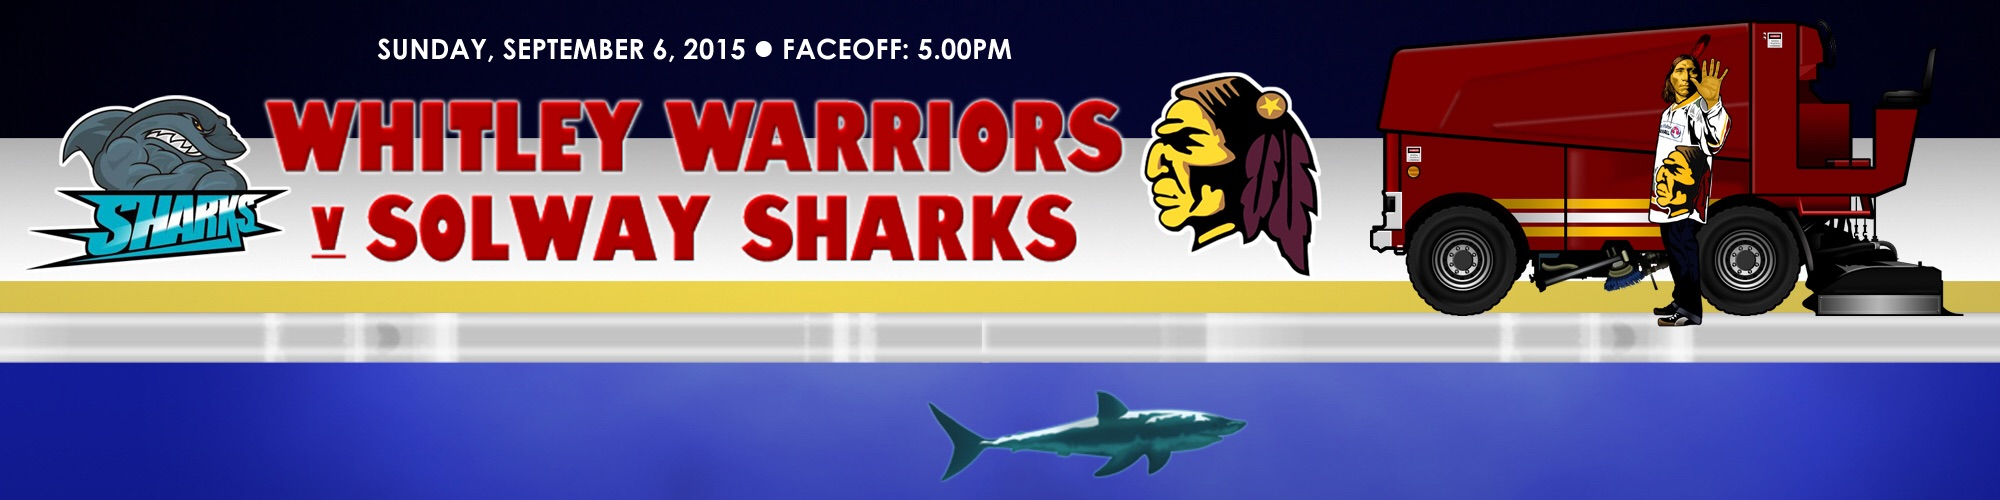 Whitley Warriors vs Solway Sharks - Sunday 6 September, face off 7pm